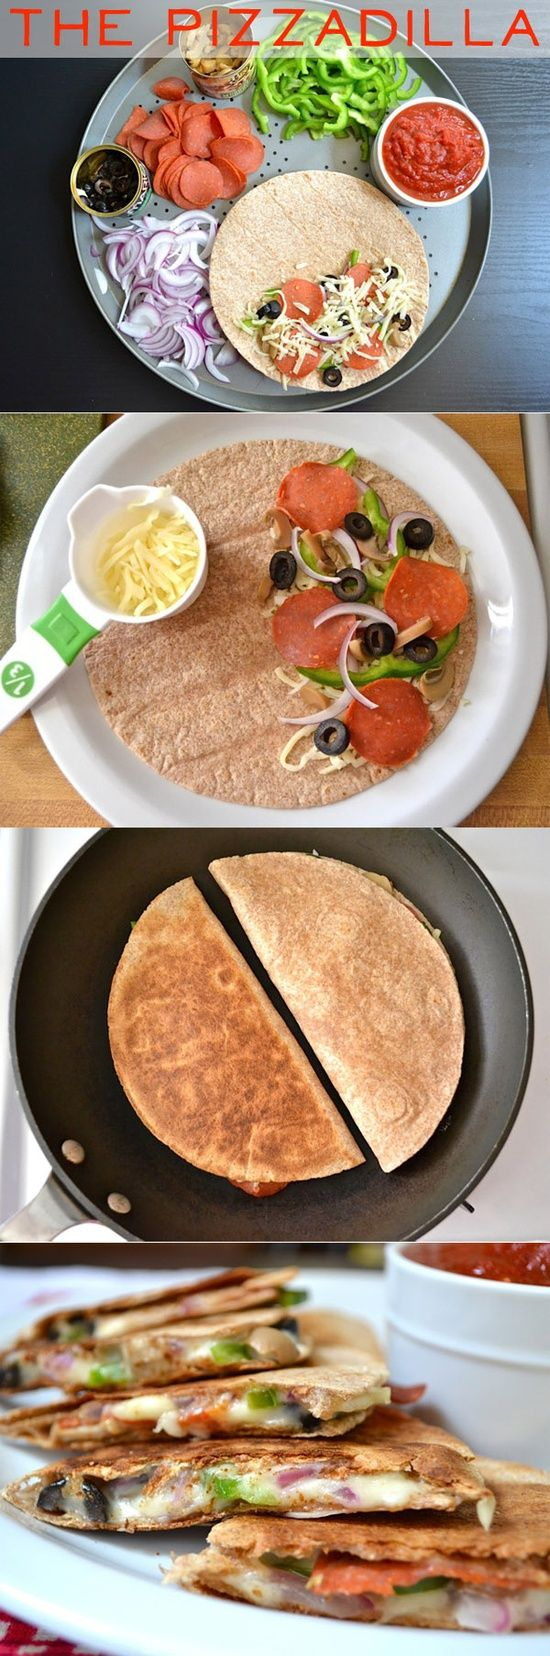 pizzadillas. healthy pizza. Ive made this for my boy a few times now. He loves it. I actually make it in the microwave, but I love that you can add whatever you have on hand. Perfect for a quick snack or the ultimate lazy dinner.